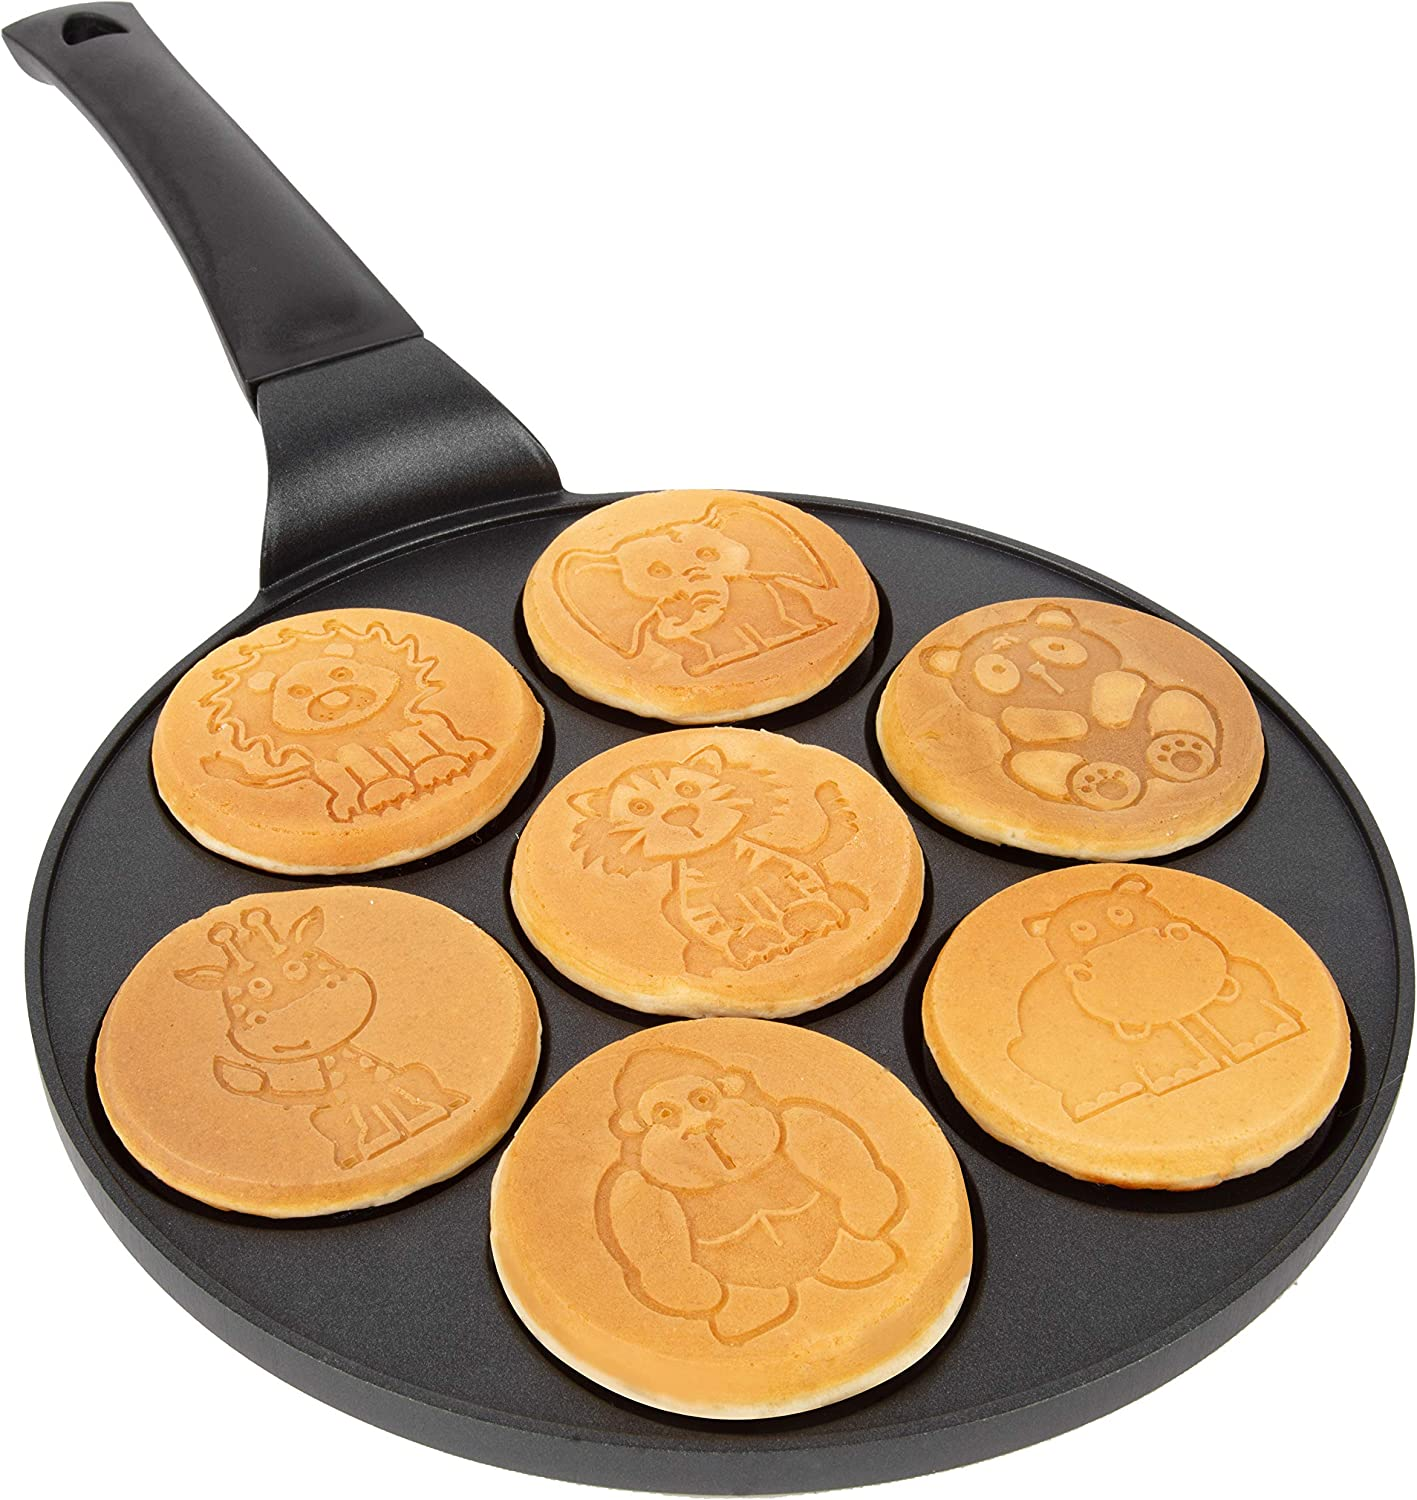 Animal Mini Pancake Pan - Make 7 Unique Flapjack Zoo Animals, Nonstick Pan Cake Maker Griddle for Breakfast Fun & Easy Cleanup